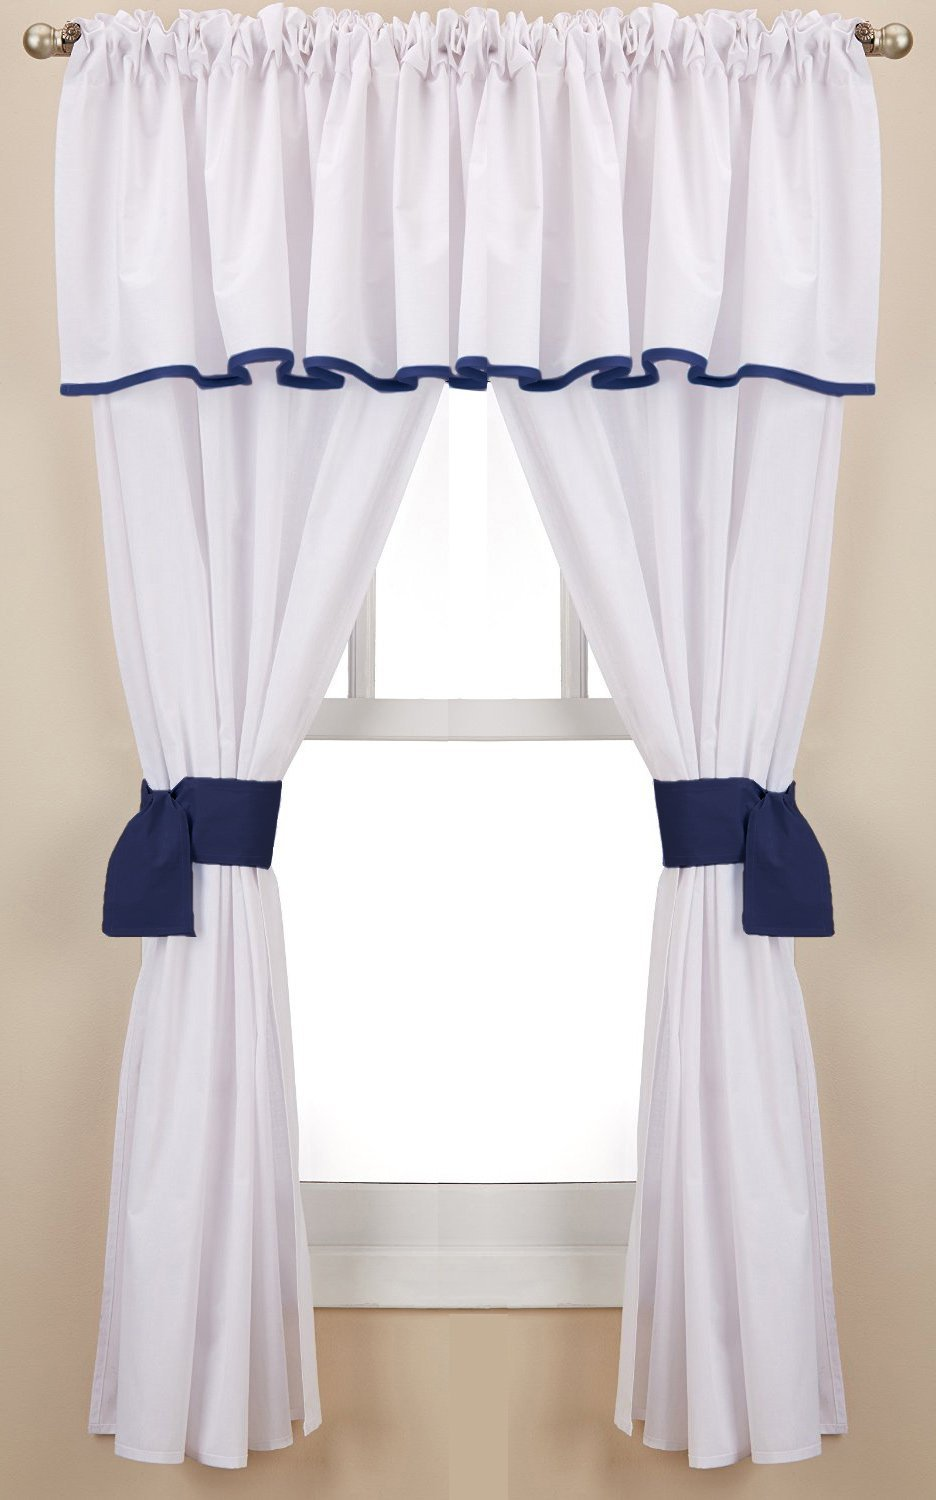 Baby Doll Bedding Miami Mall Forever Mine Junior Cur 5 Piece Los Angeles Mall Window Valance